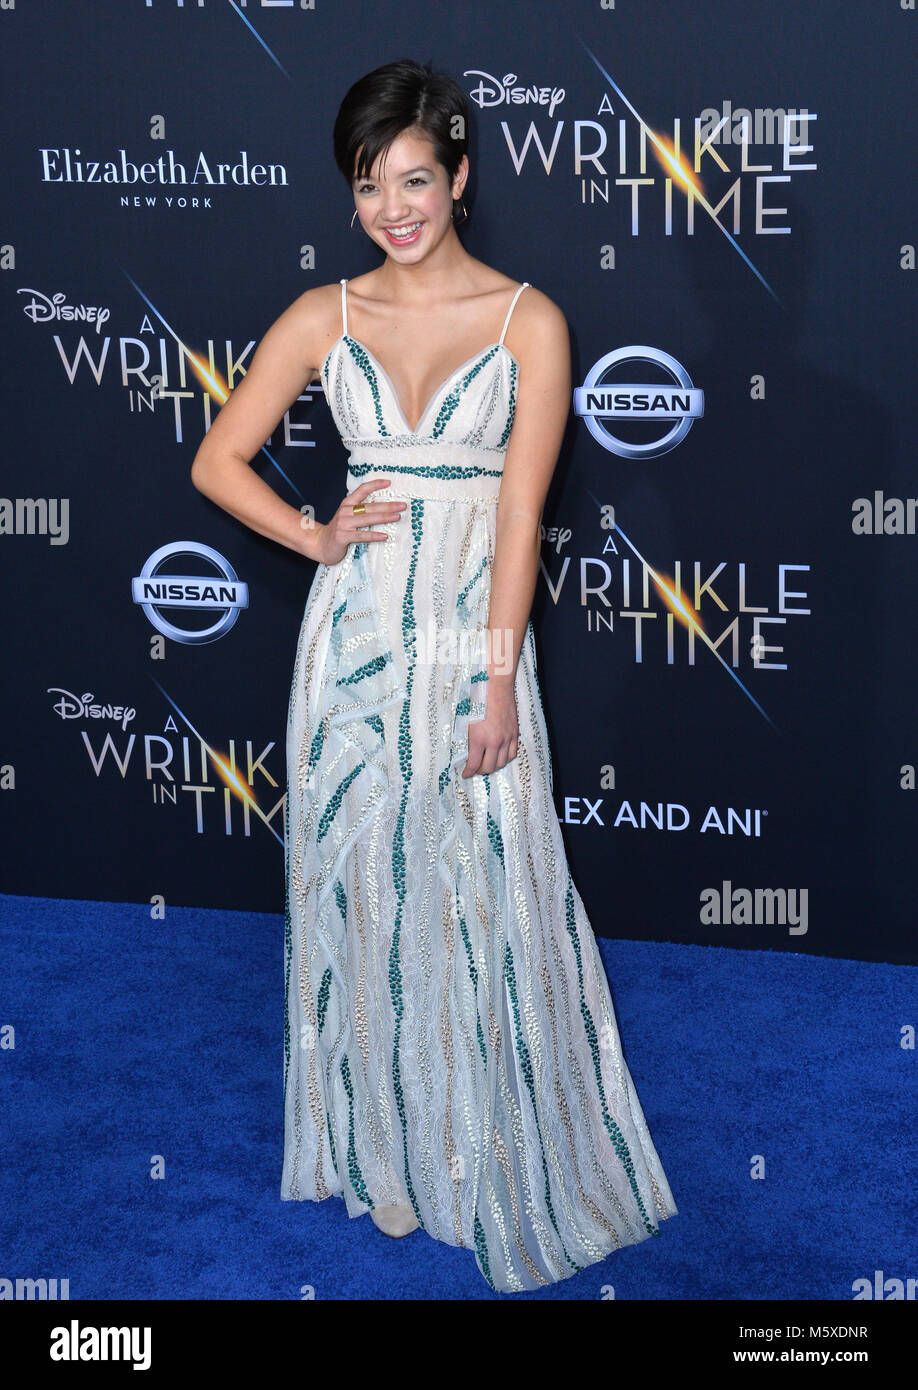 Los Angeles, USA. 26th Feb, 2018. Peyton Elizabeth Lee at the premiere for 'A Wrinkle in Time' at the El - Stock Image